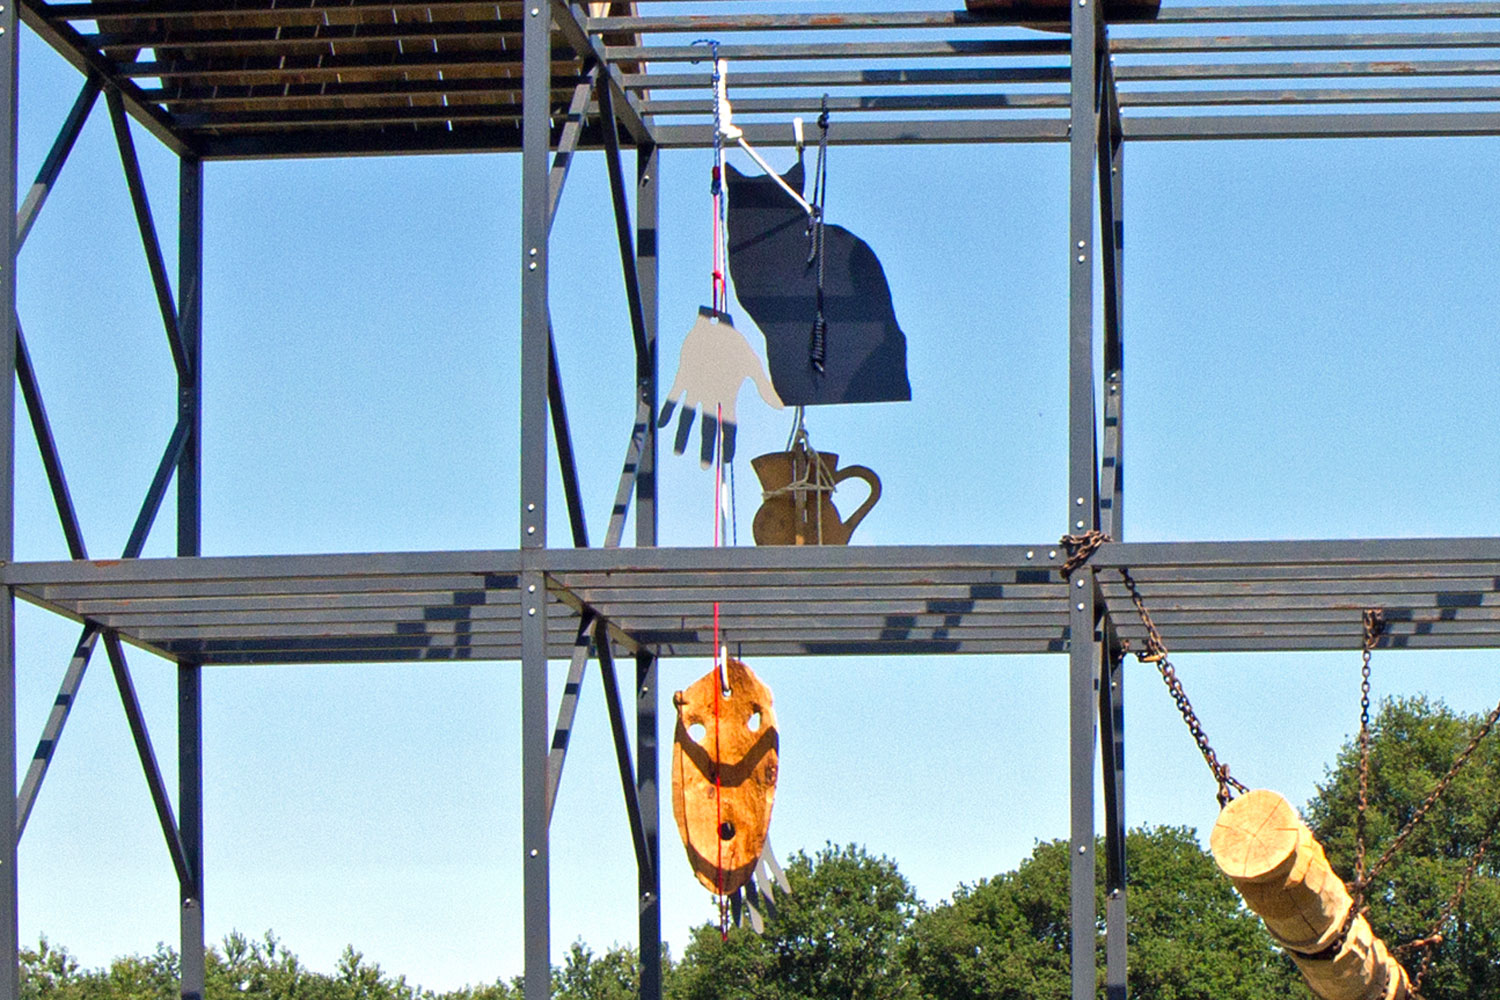 HubHug Sculpture Project – Le Rack